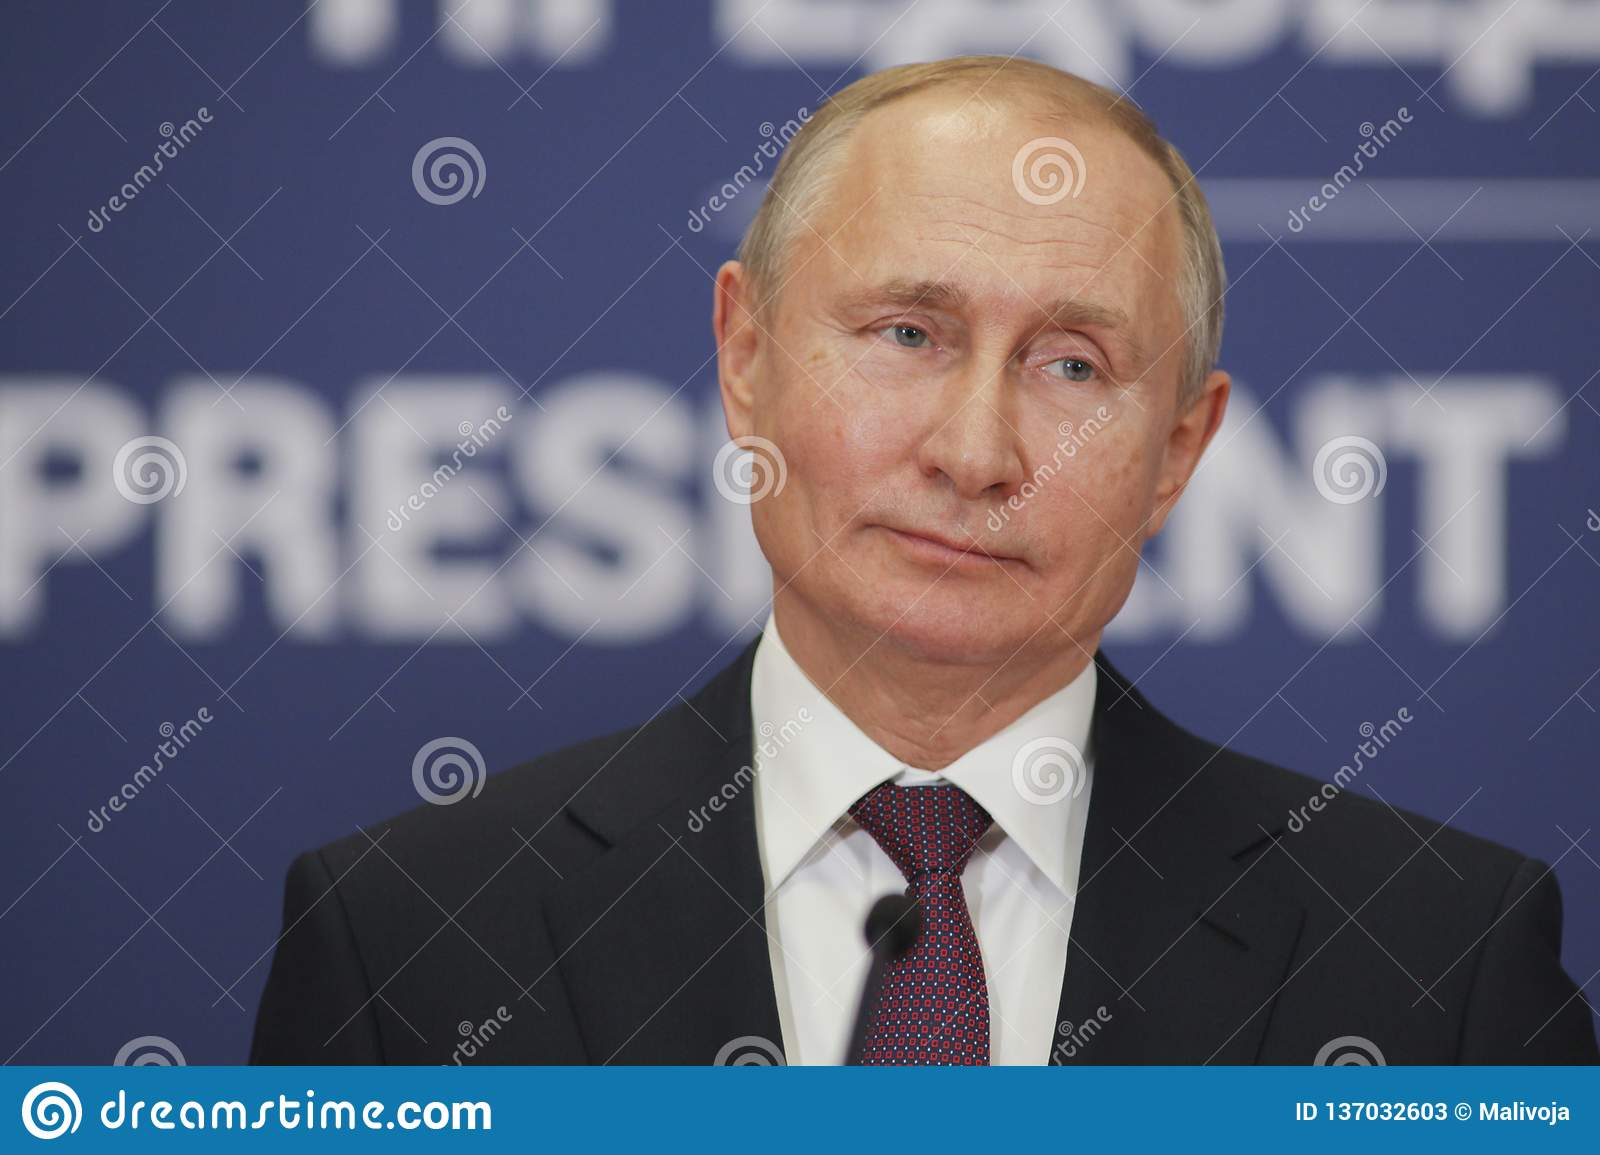 Belgrade, Serbia - January 17, 2019 : Vladimir Putin, the President of Russian Federation in press conference at the Palace of Ser